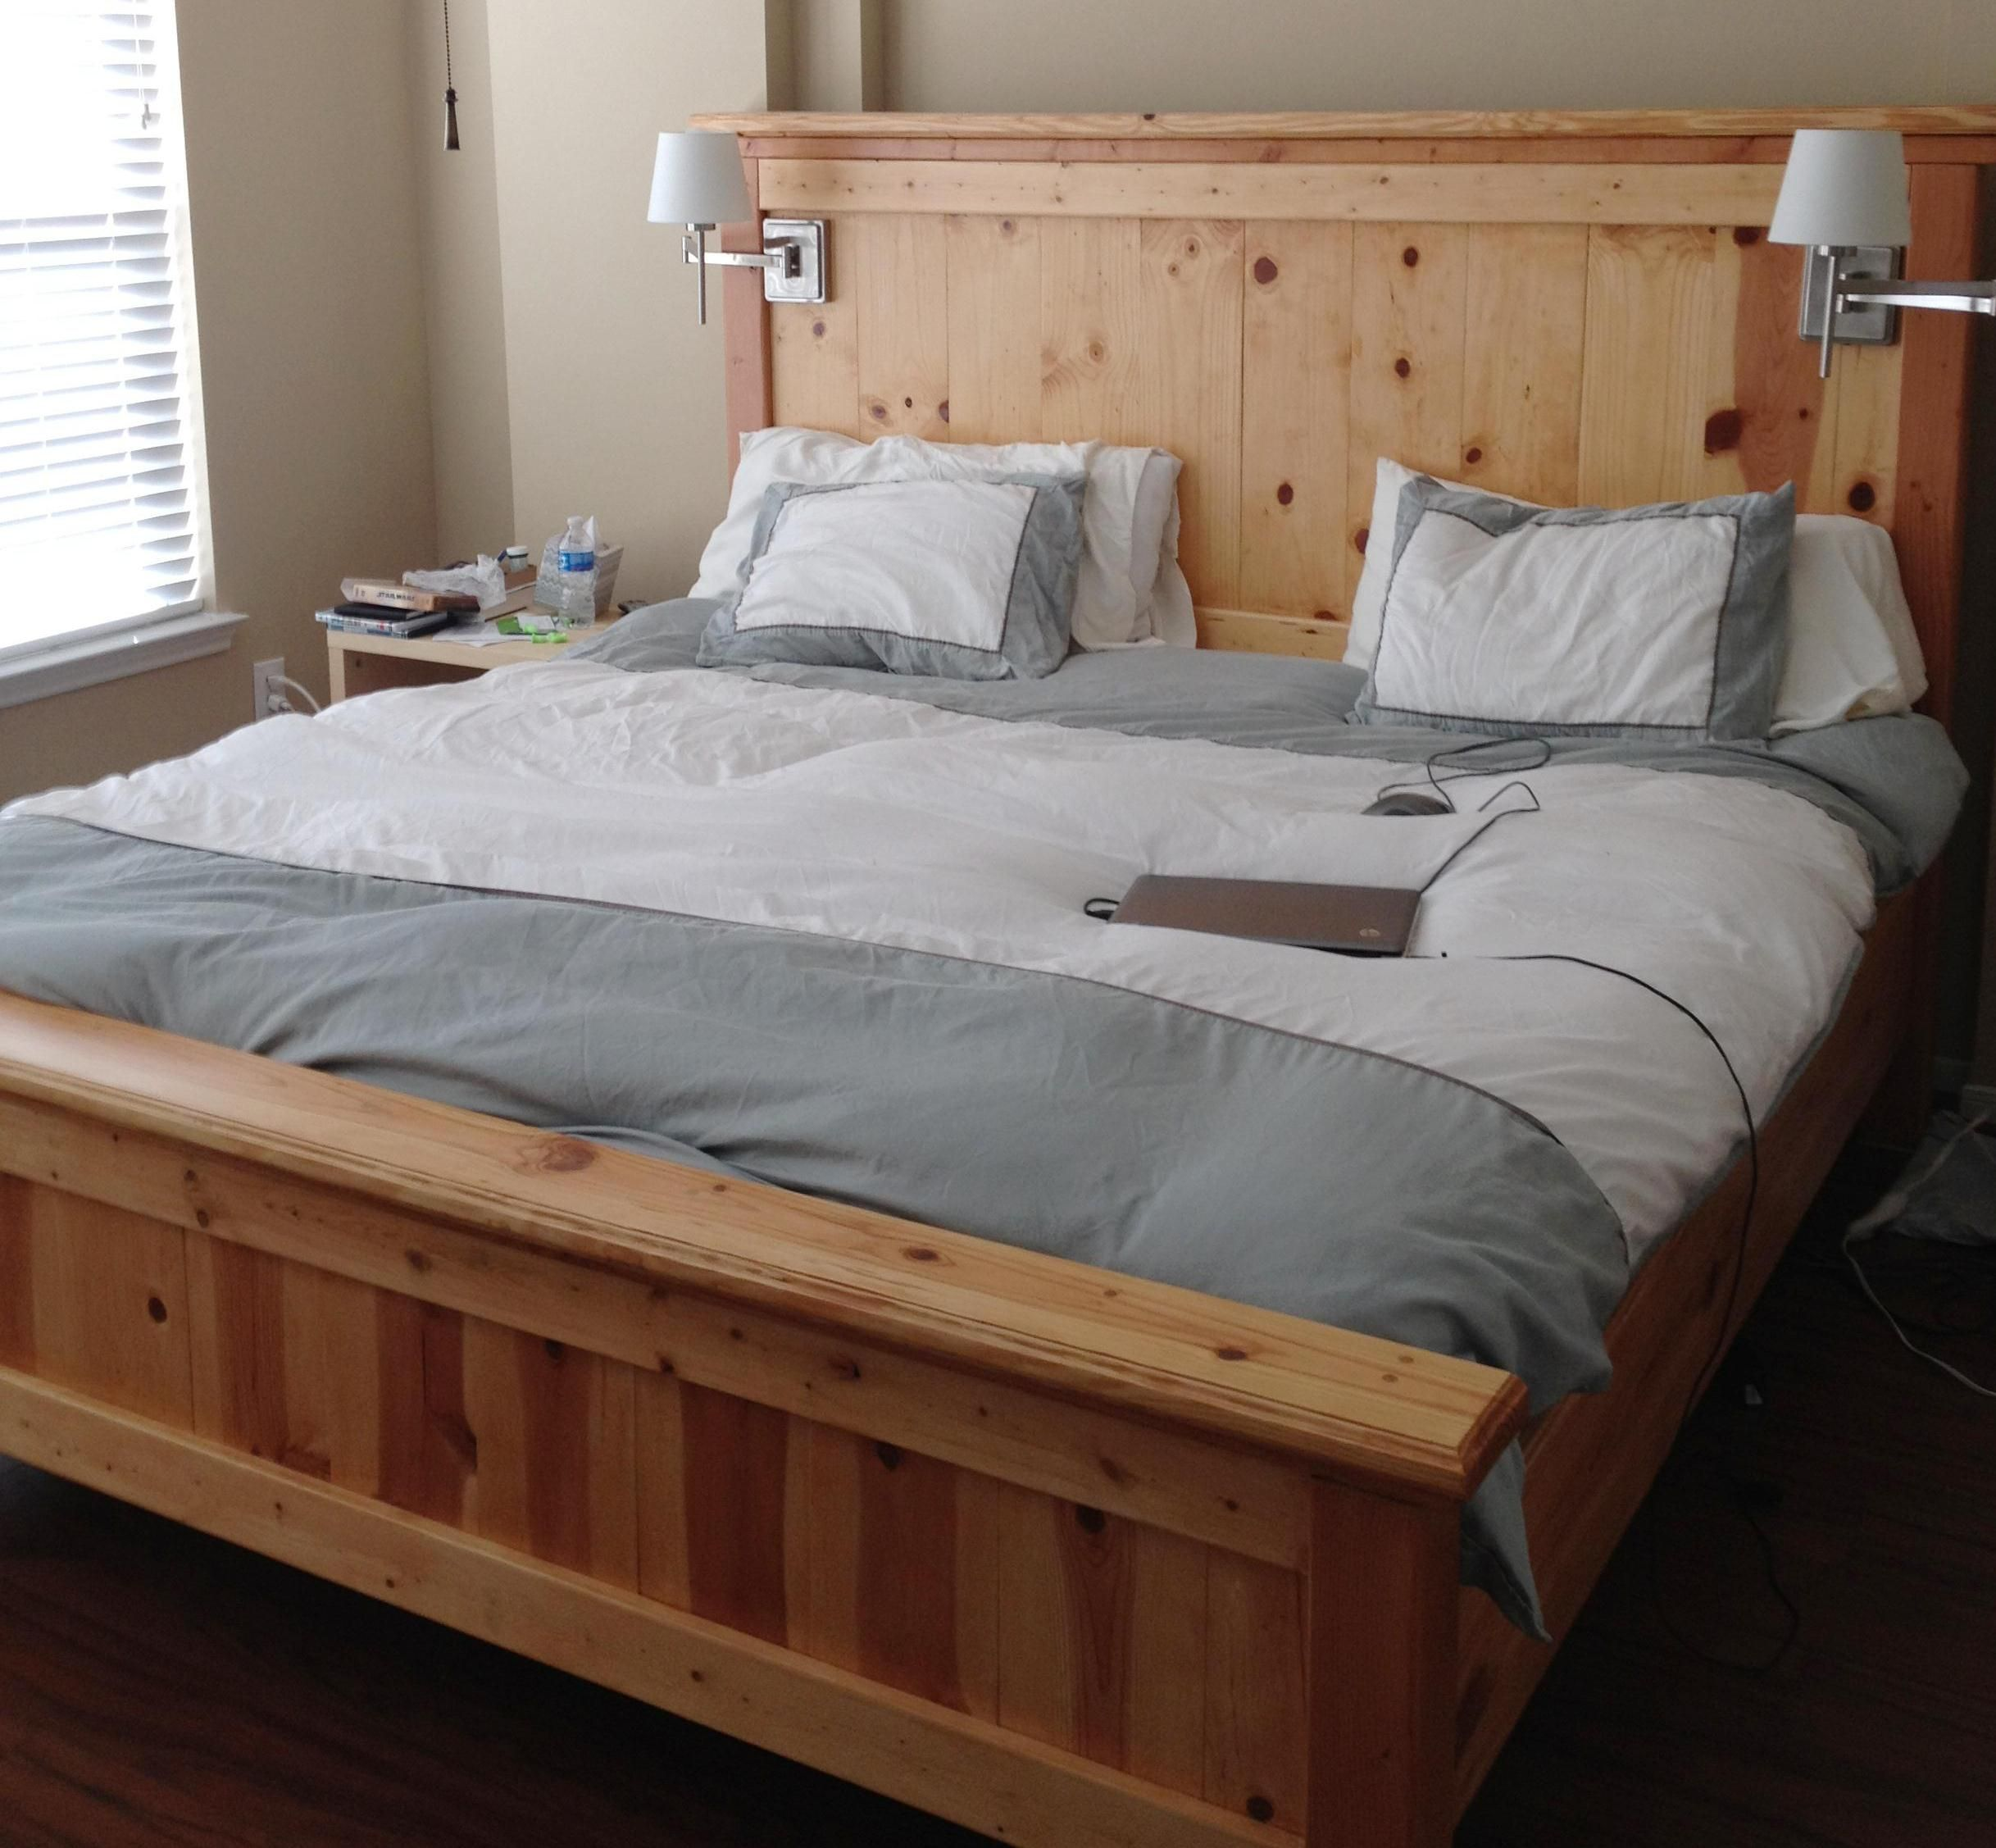 Wooden bed frame ideas - Bed Frame Blueprints Free Farmhouse Bed King Do It Yourself Home Projects From Ana